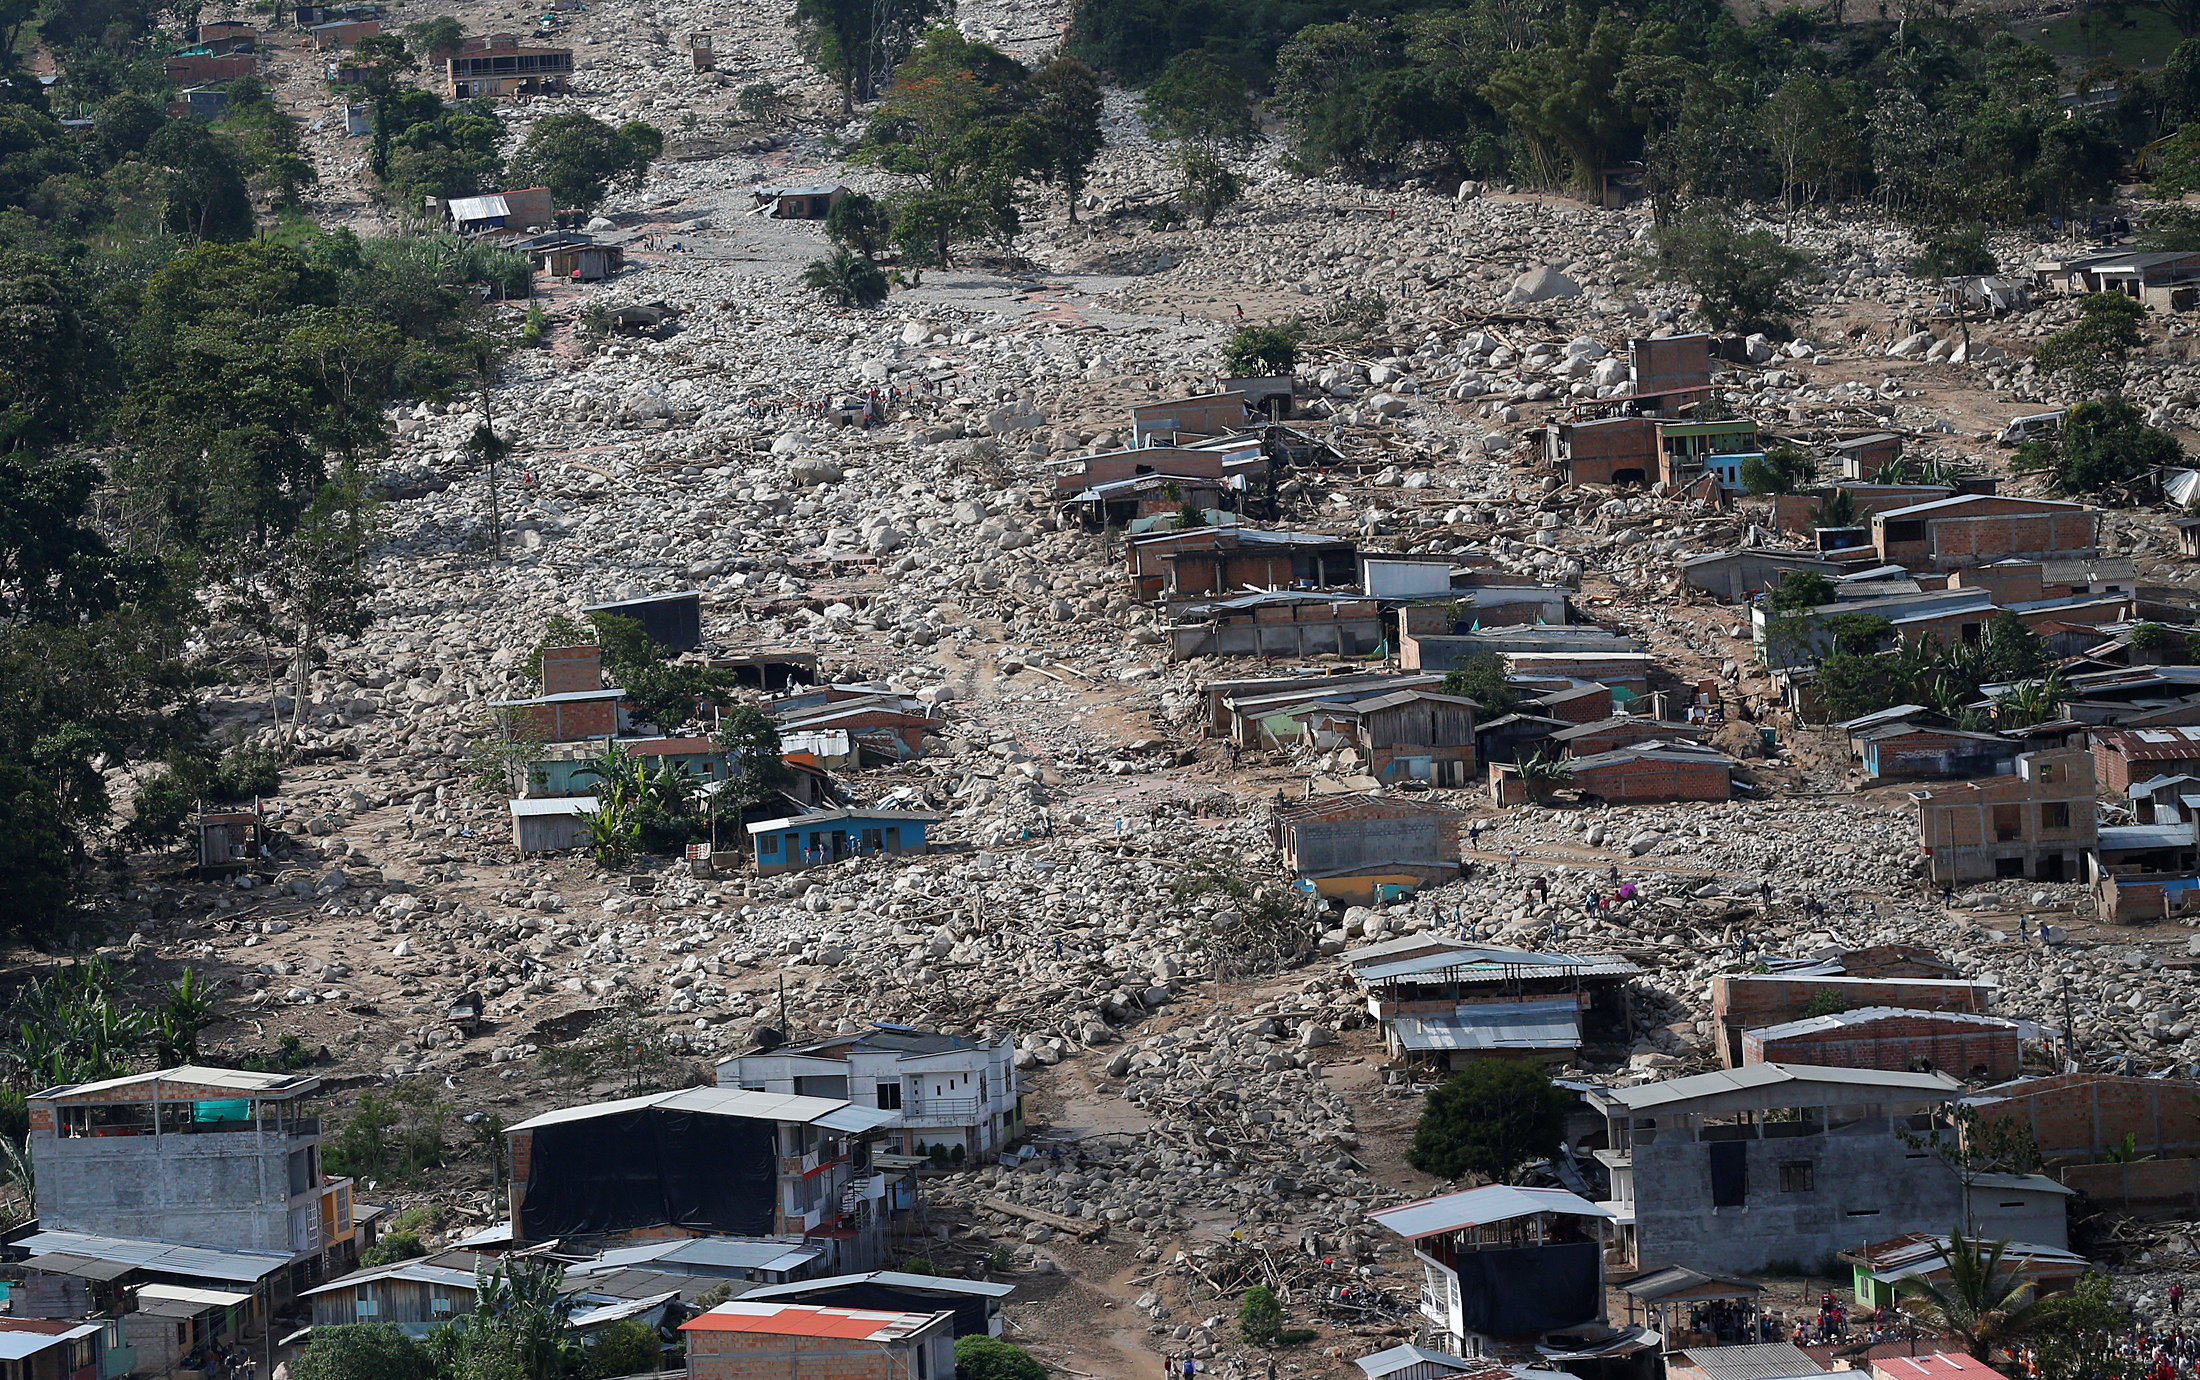 Aerial view of a neighborhood destroyed after flooding and mudslides caused by heavy rains leading several rivers to overflow, pushing sediment and rocks into buildings and roads, in Mocoa, Colombia April 3, 2017. REUTERS/Jaime Saldarriaga